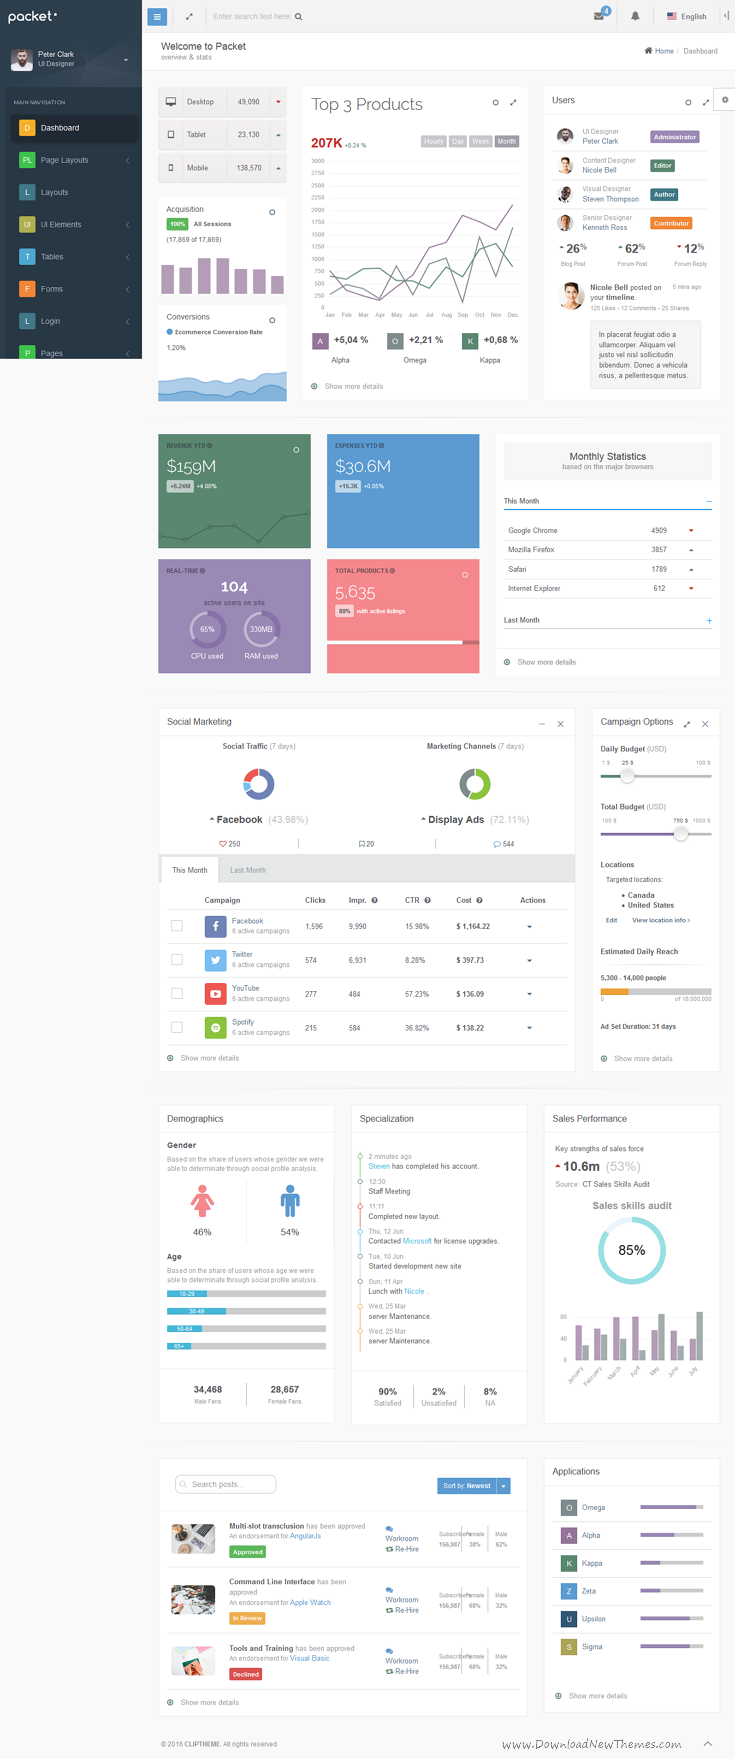 Packet is wonderful 6 in 1 Bootstrap, AngularJS And HTML